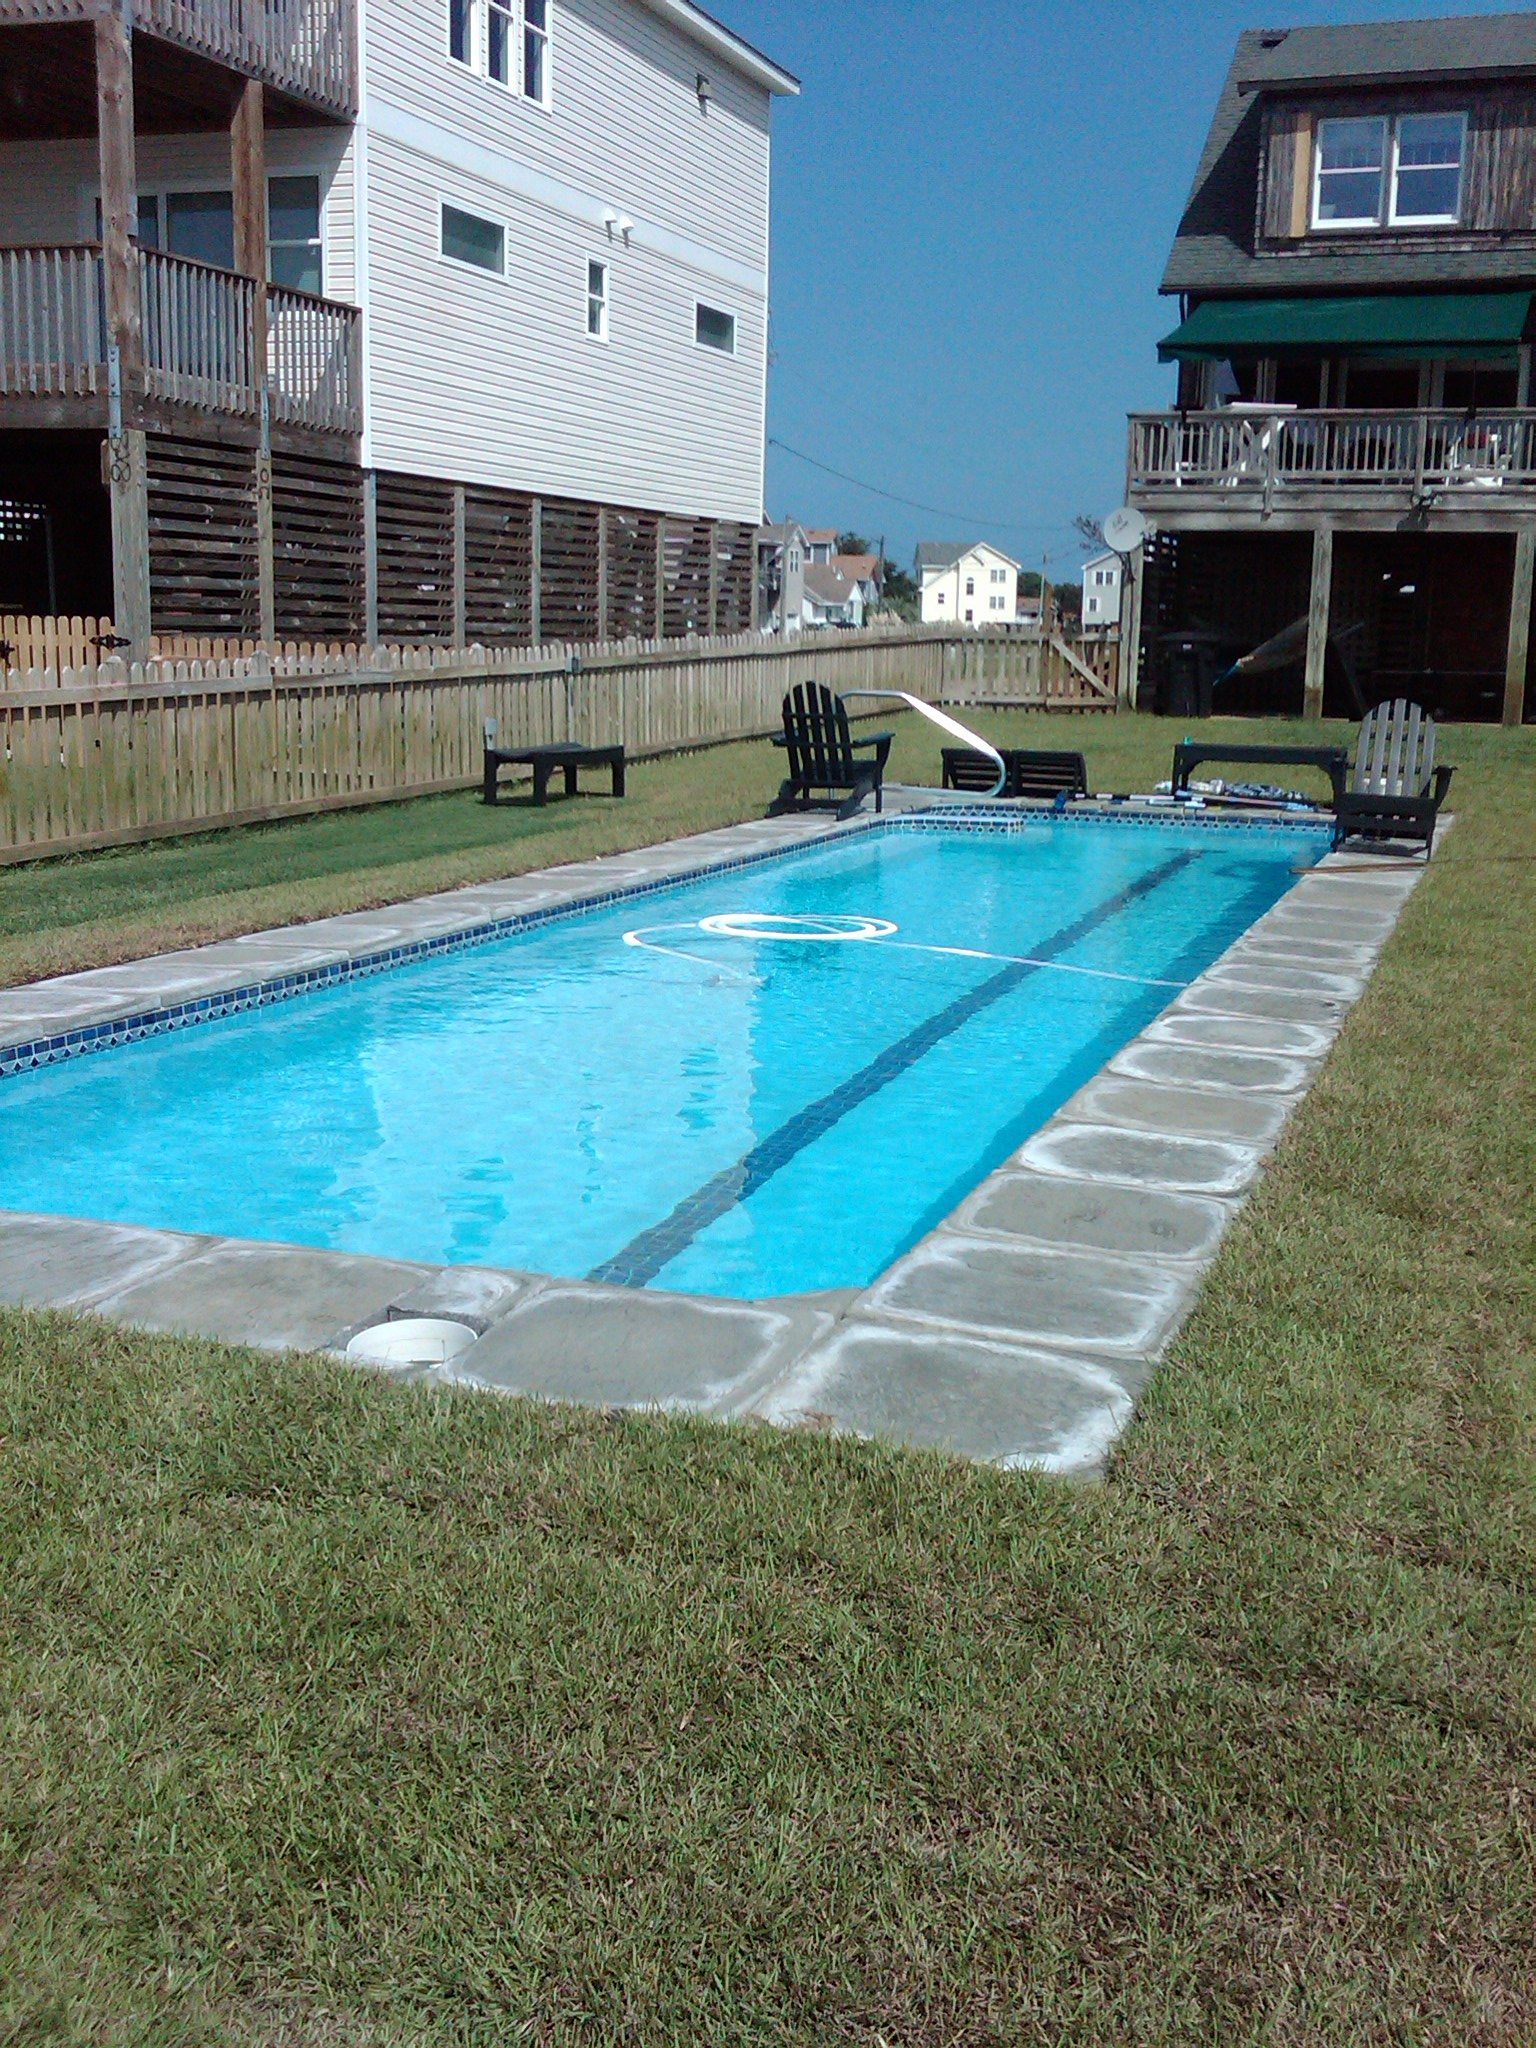 outer banks pool cleaner automatic vacuum pool supplies outer banks pool tight spaces